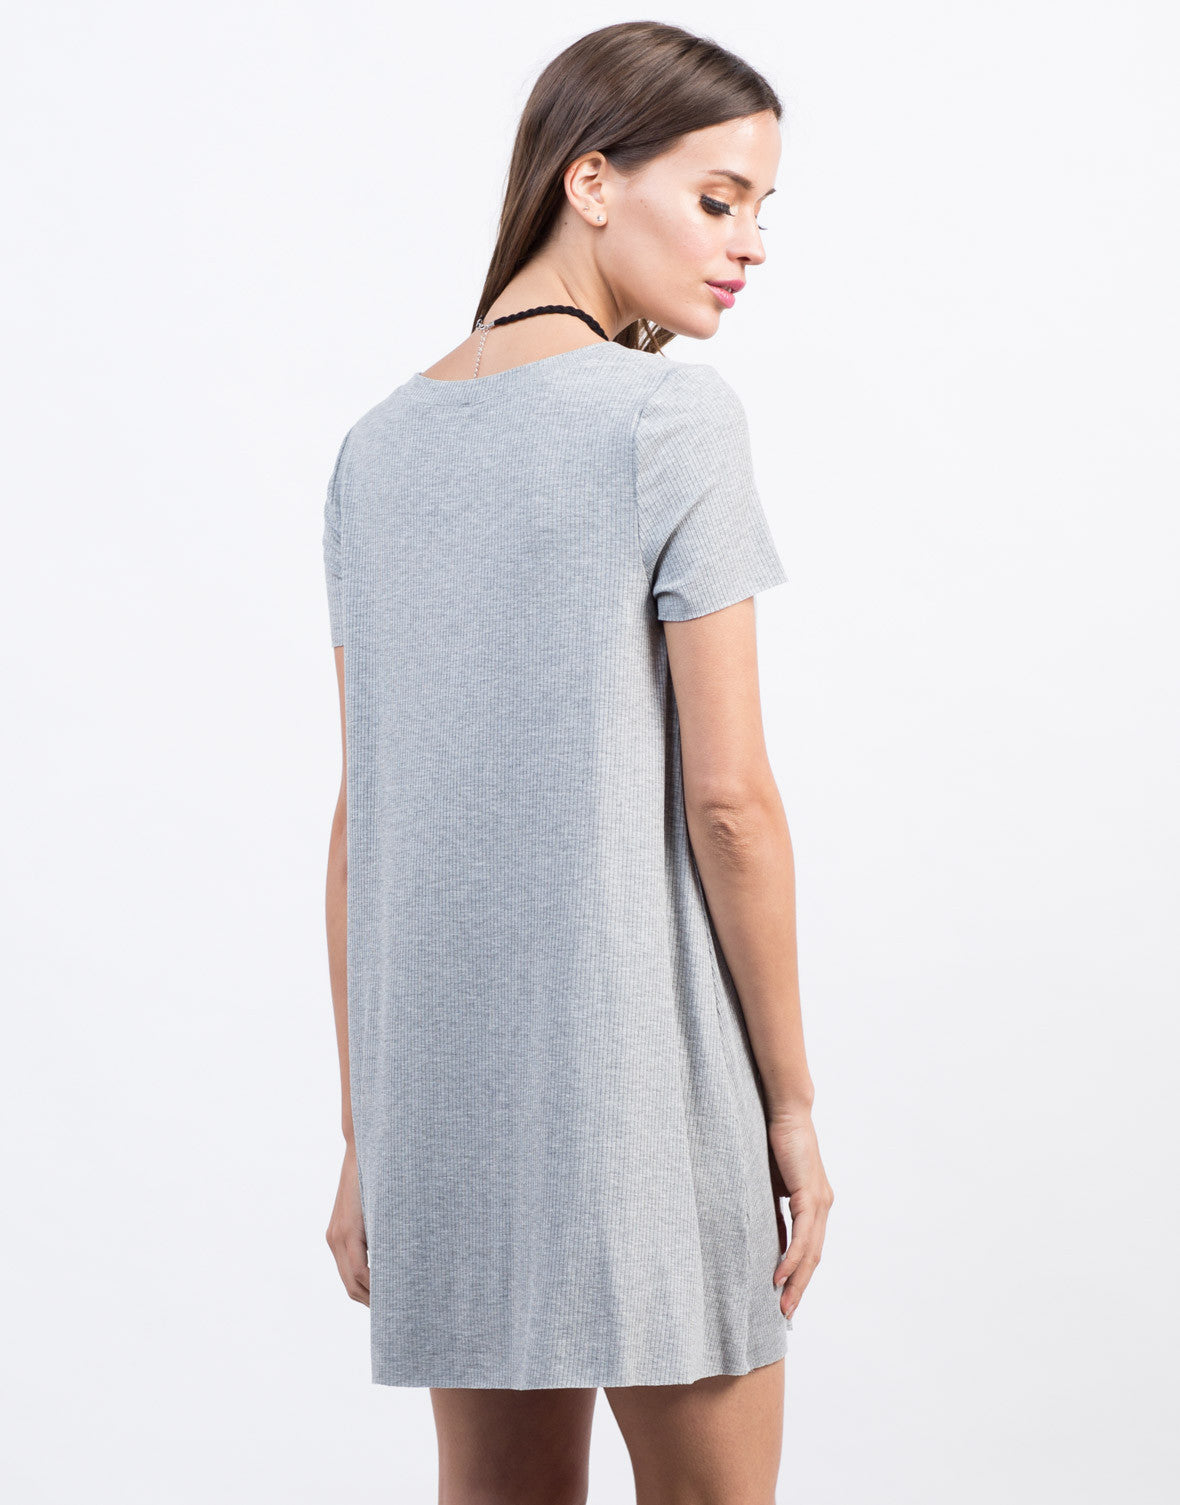 Back View of Pocket Tee Dress